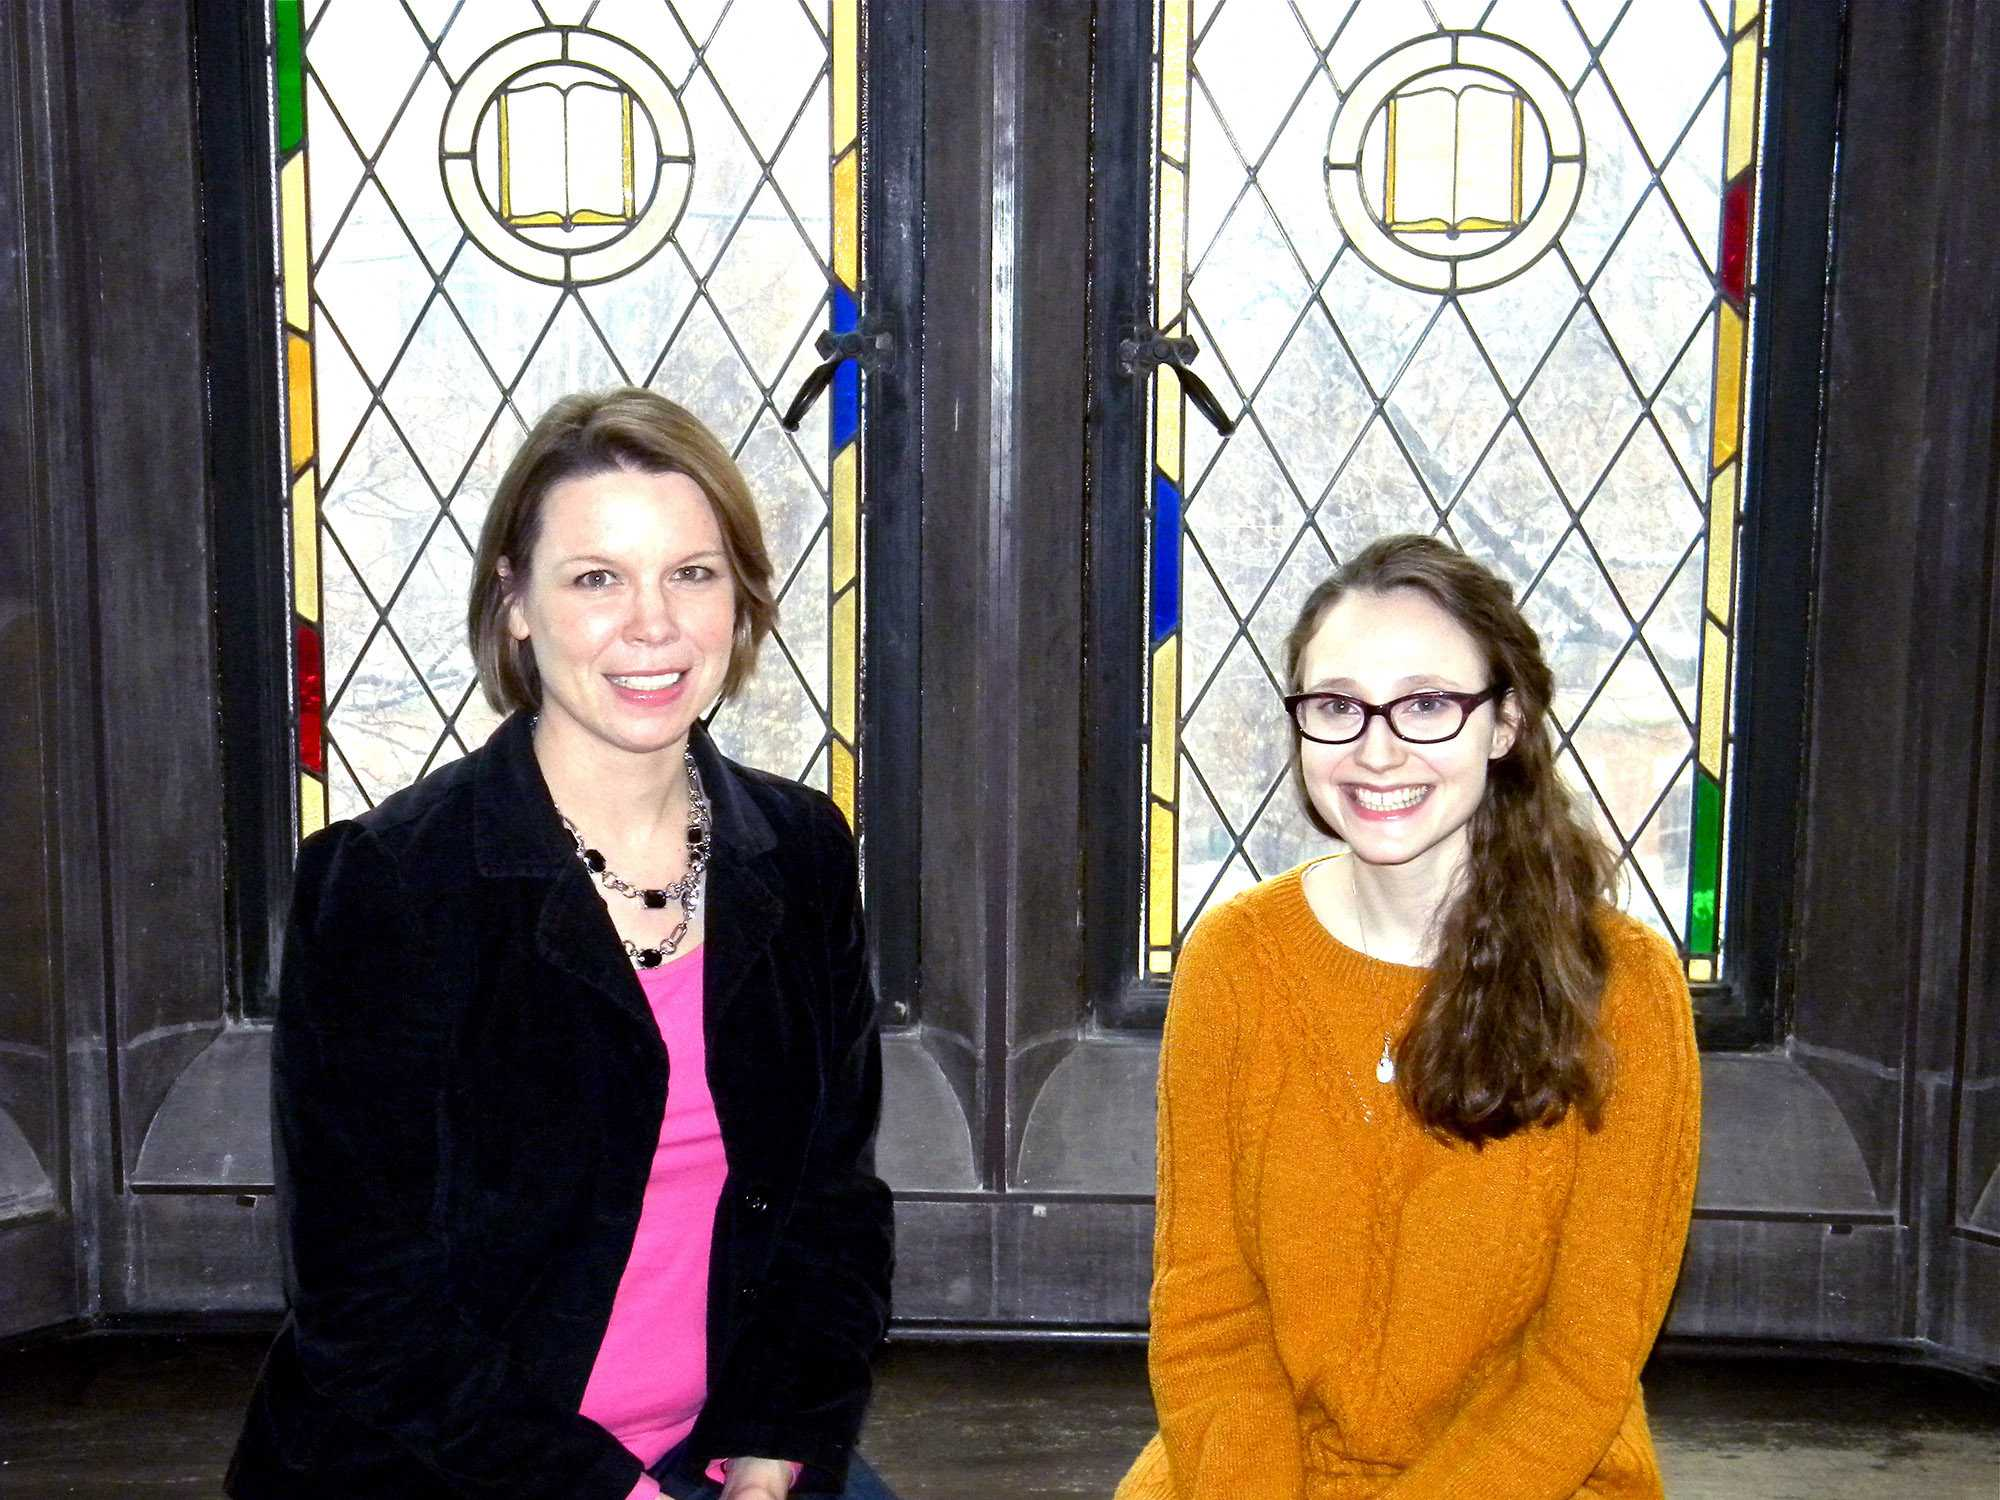 Psychology professor Amy Przeworski and graduate student Jennifer Birnkrant created a survey that is looking to learn more about the experiences of transgender children and their parents.